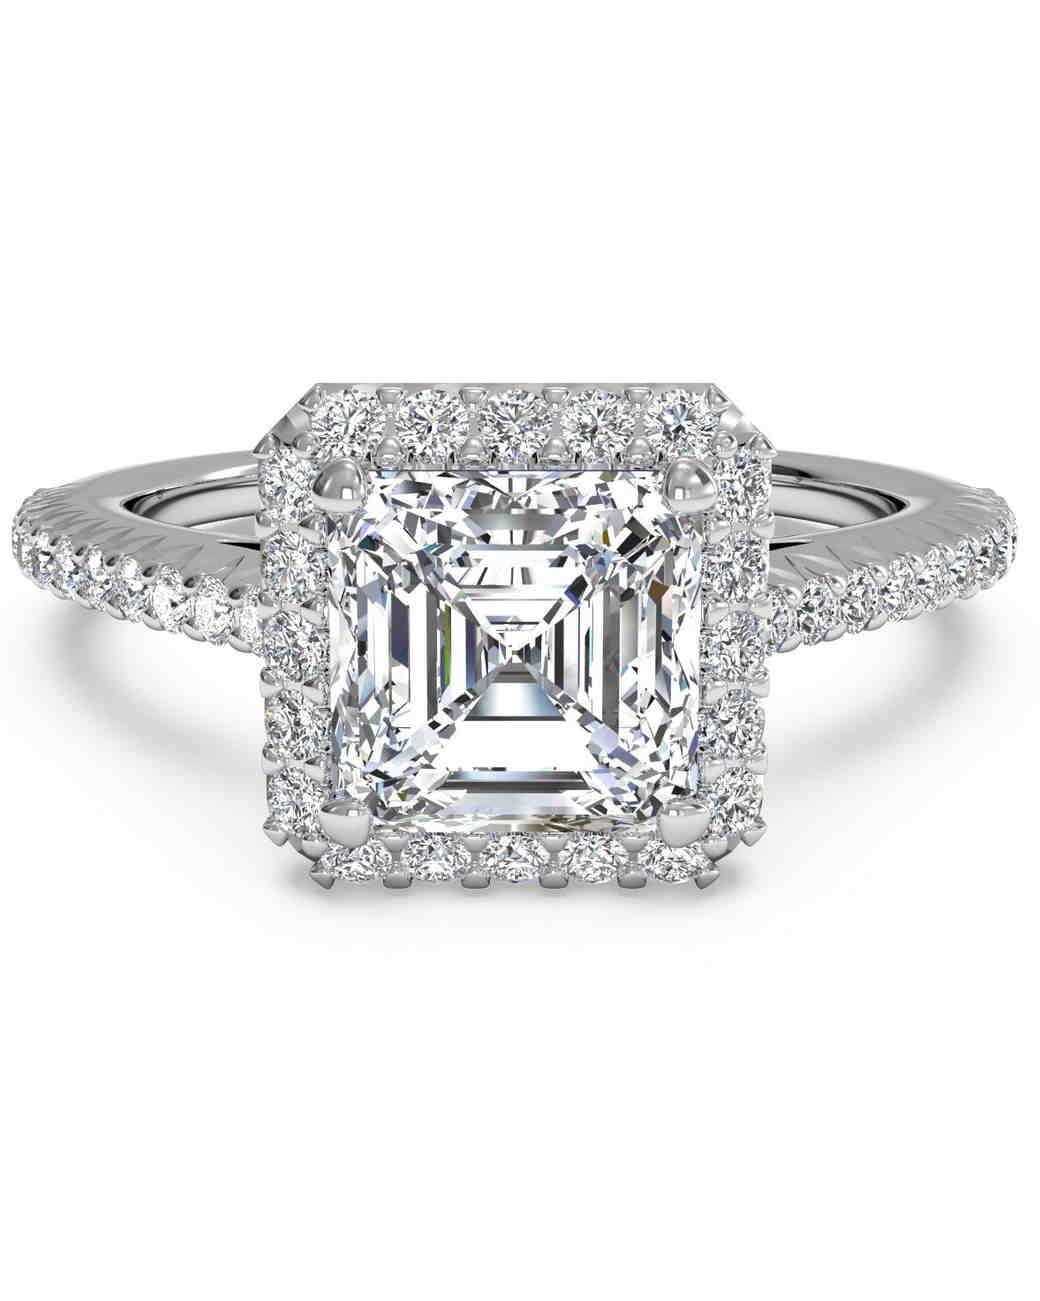 Asscher Diamond Rings | Wedding, Promise, Diamond, Engagement Intended For Asscher Cut Wedding Rings (Gallery 11 of 15)